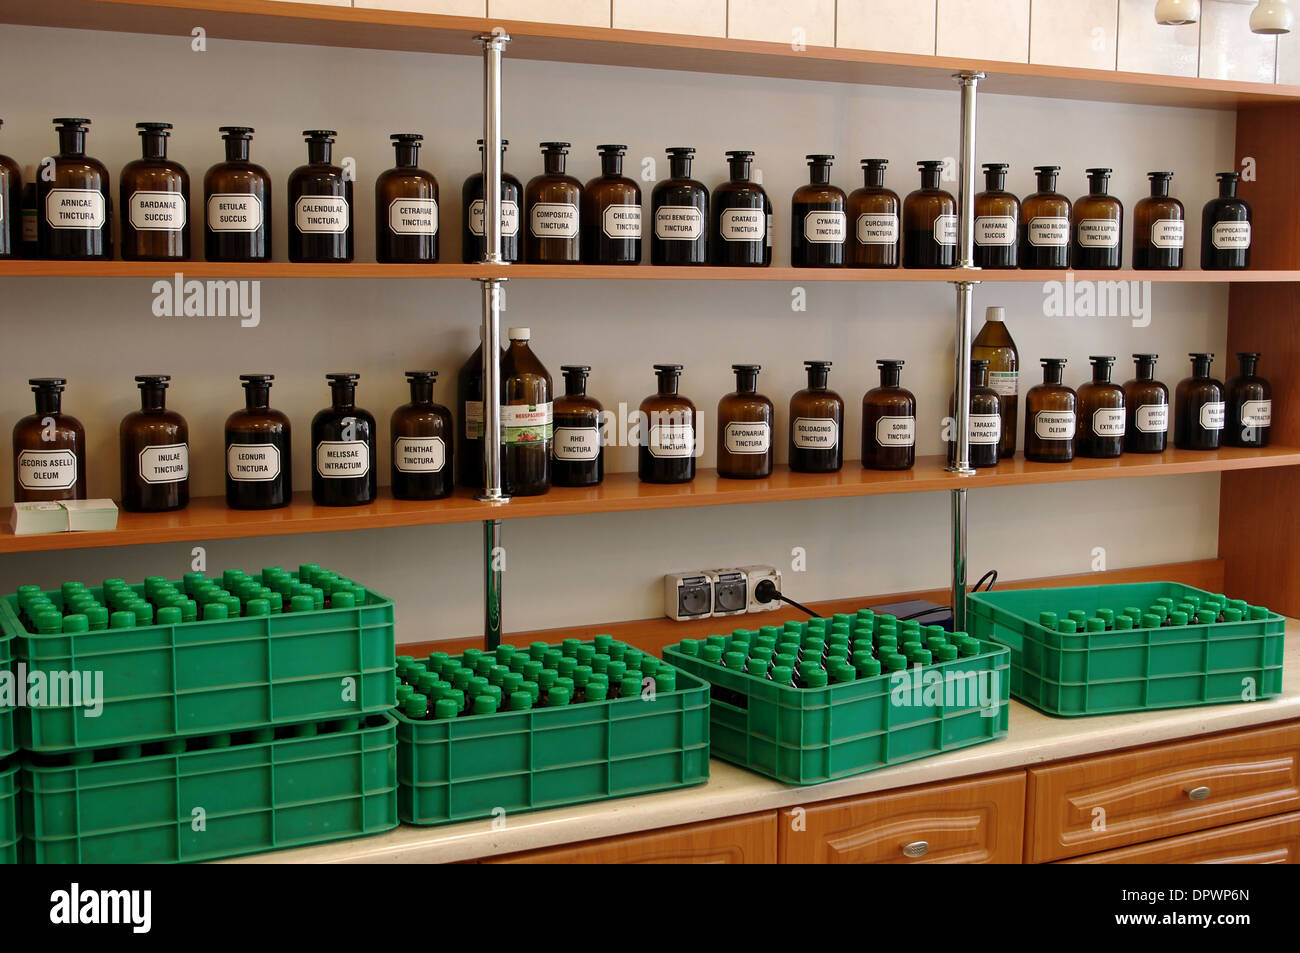 Glass bottles with herbal medicines standing on a shelf rack in the Knights Hospitallers pharmacy on May 2, 2011 in Krakow, Poland Stock Photo